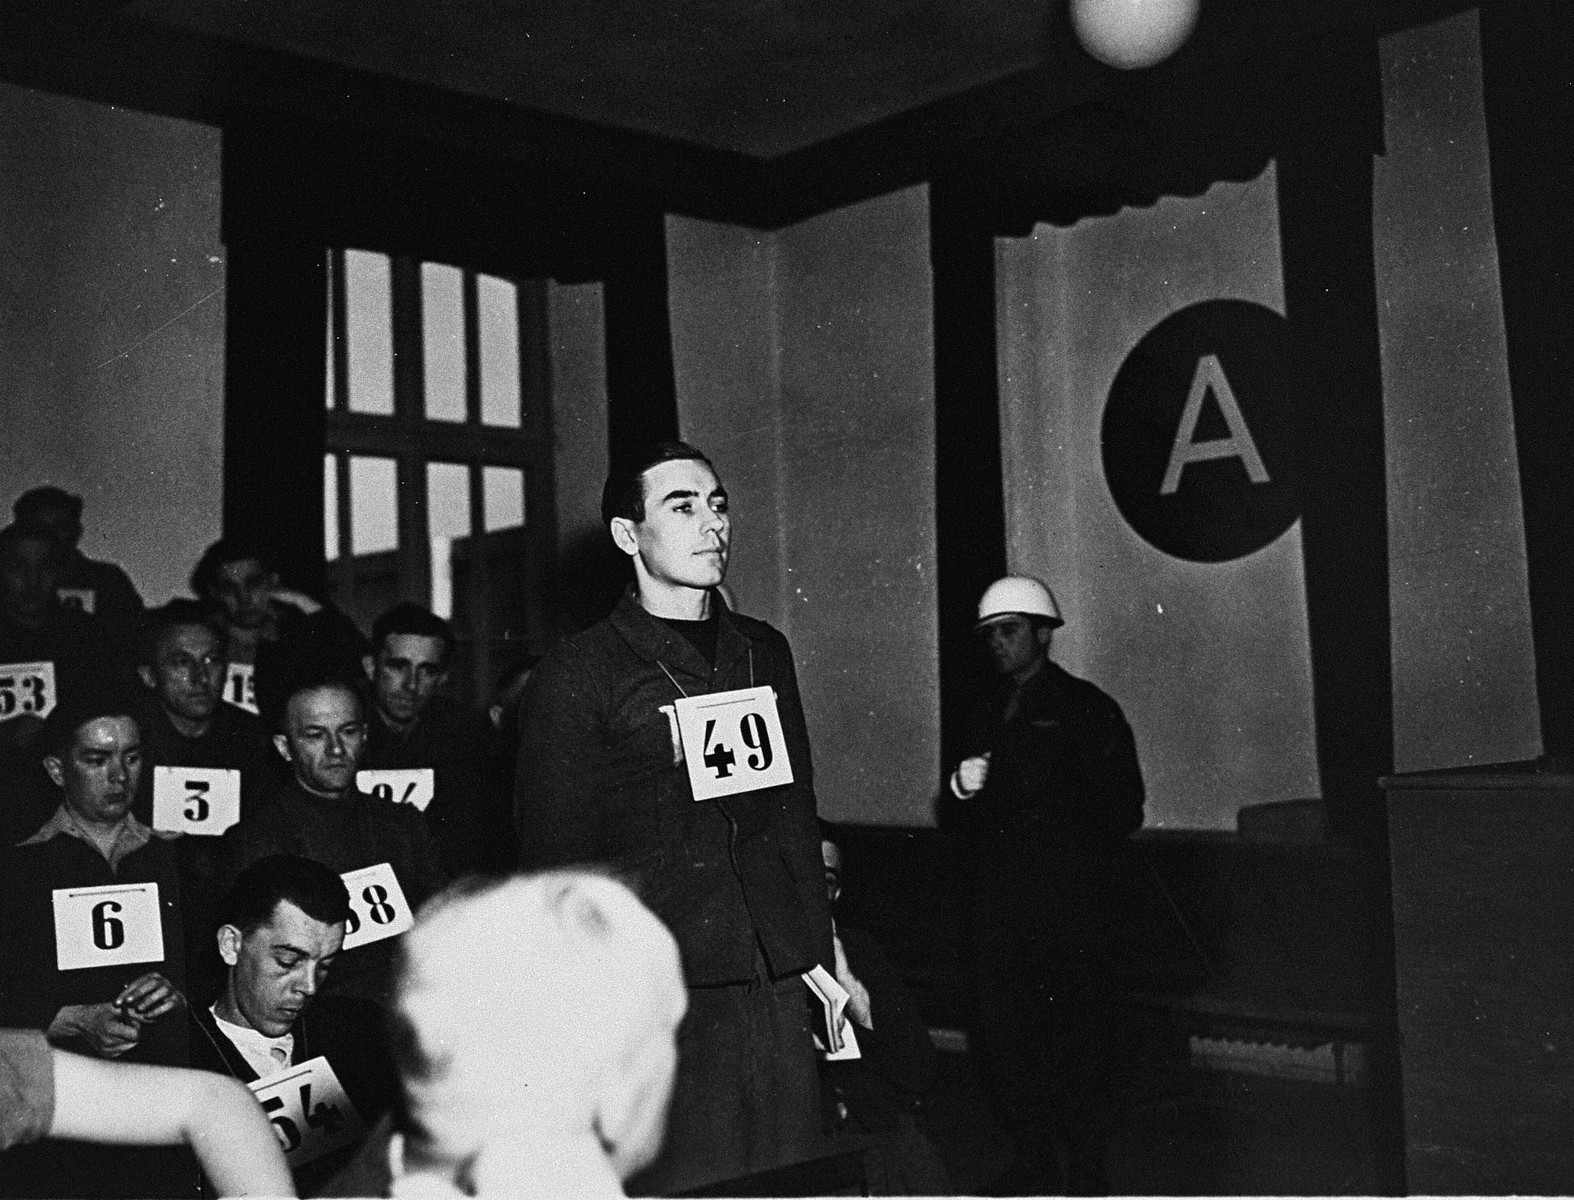 Former SS-Unterscharfuehrer Josef Riegler, a defendant at the trial of 61 former camp personnel and prisoners from Mauthausen, stands in his place in the defendants' dock.    Riegler was convicted and sentenced to death on May 13, 1946.